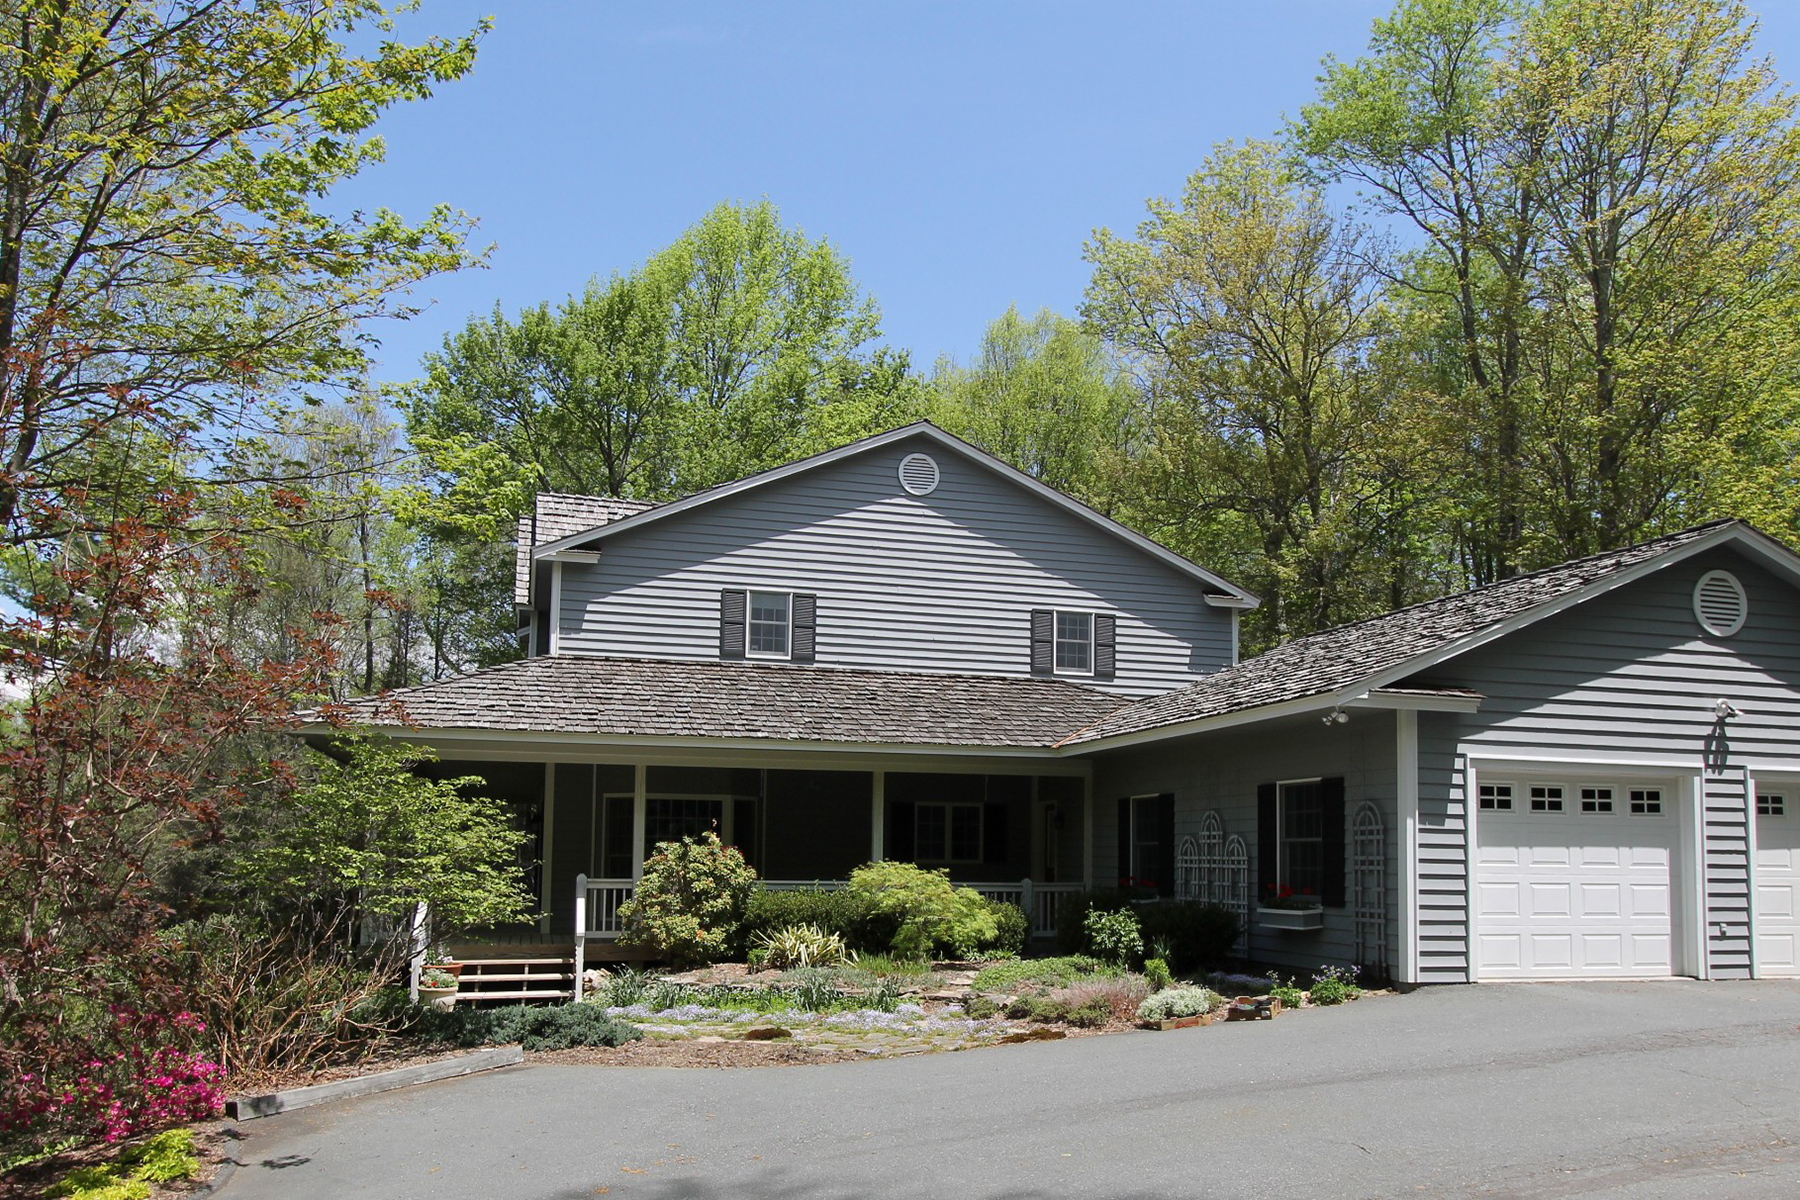 Single Family Home for Sale at BLOWING ROCK - HILLWINDS ESTATES 154 High Ridge Lane, Blowing Rock, North Carolina 28605 United States